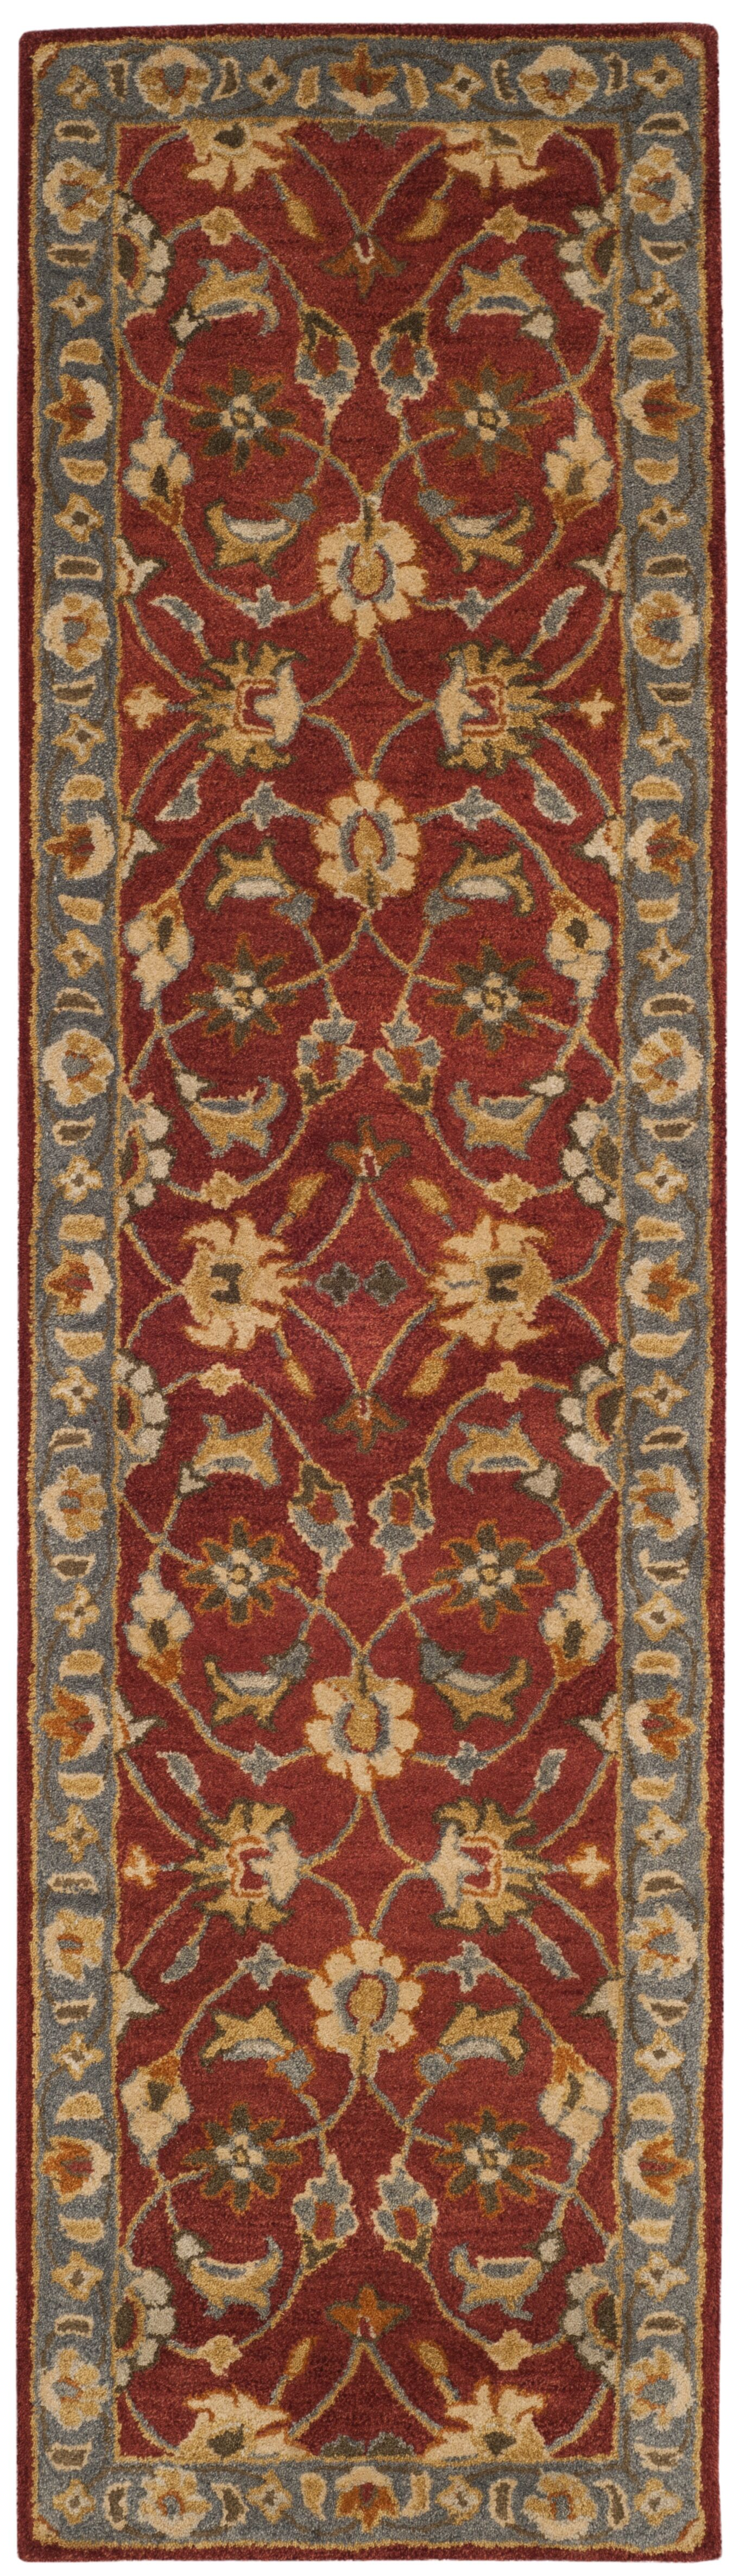 Cranmore Hand-Tufted Red/Blue Area Rug Rug Size: Runner 2'3